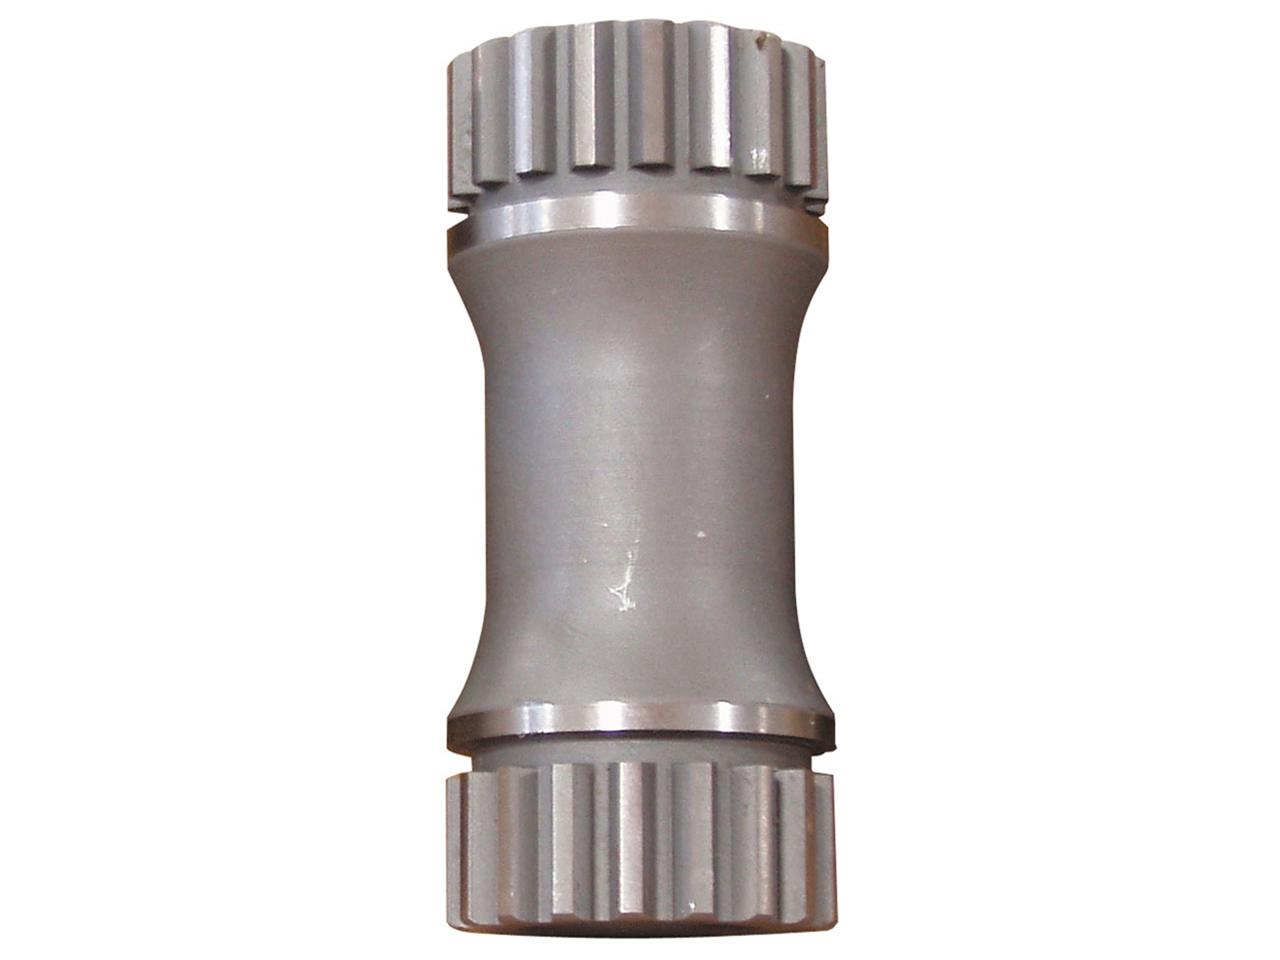 Picture of Falcon 18/18 Spline Input Shaft